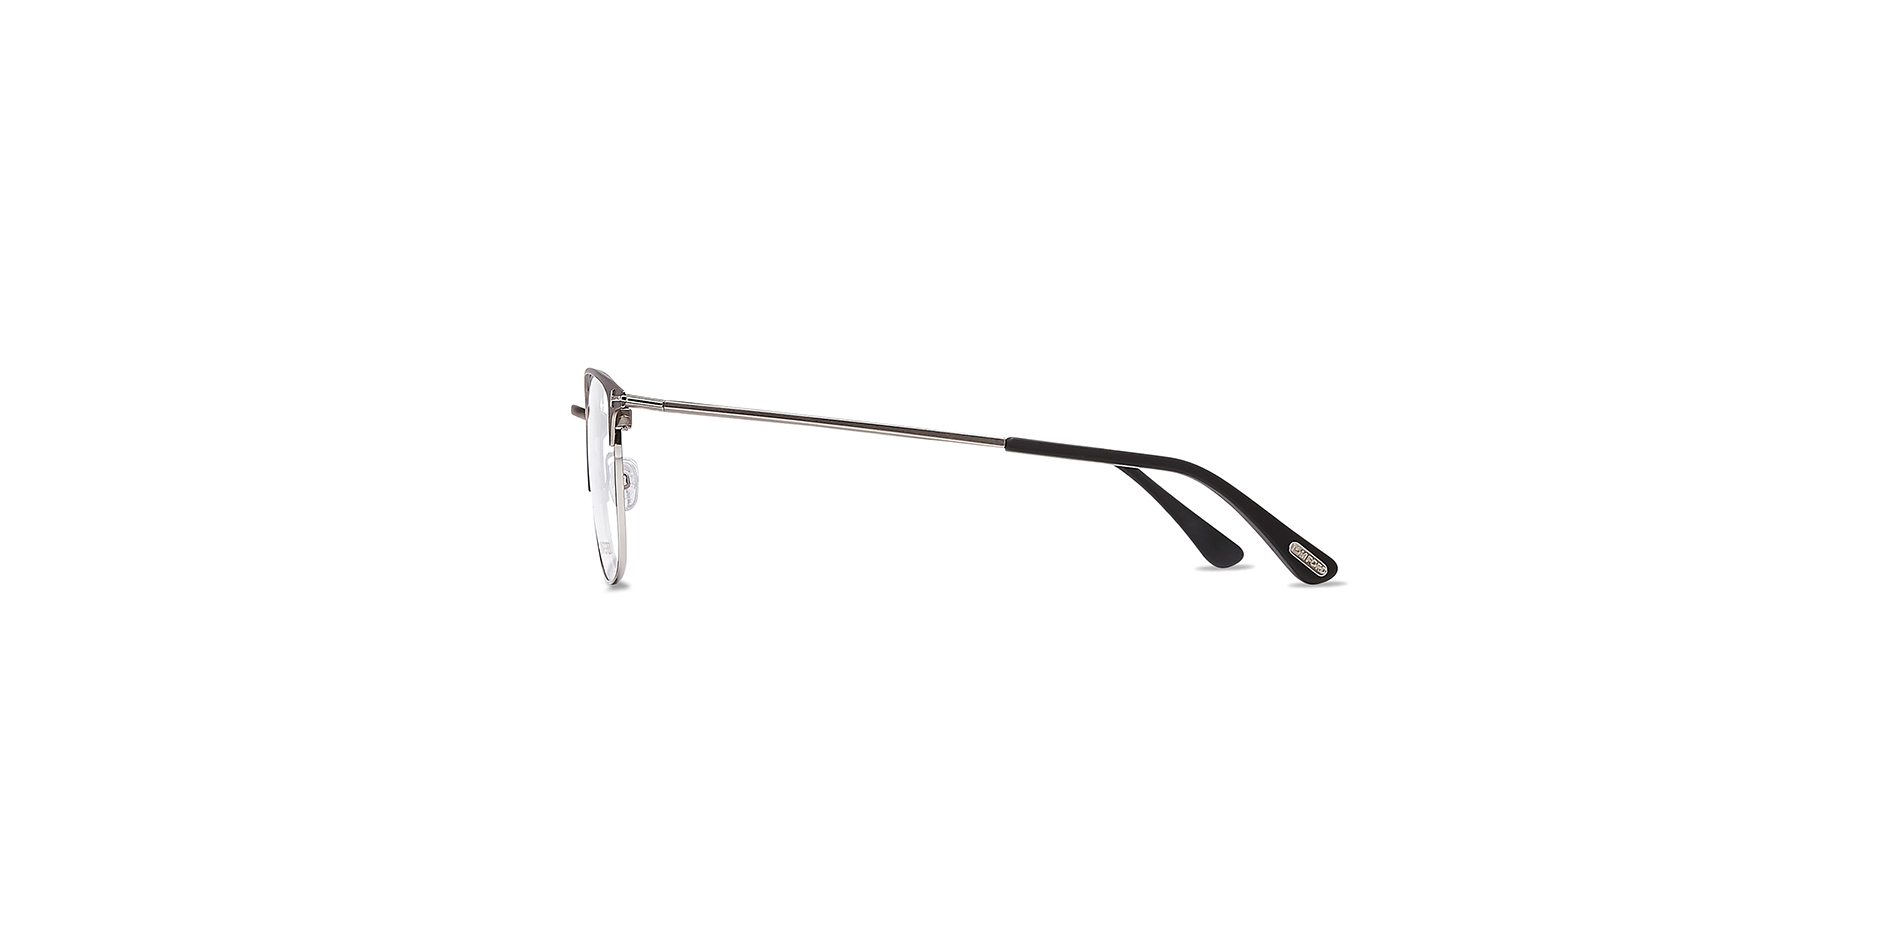 Modische Herren-Korrektionsbrille aus Metall, Tom Ford, TF 5453